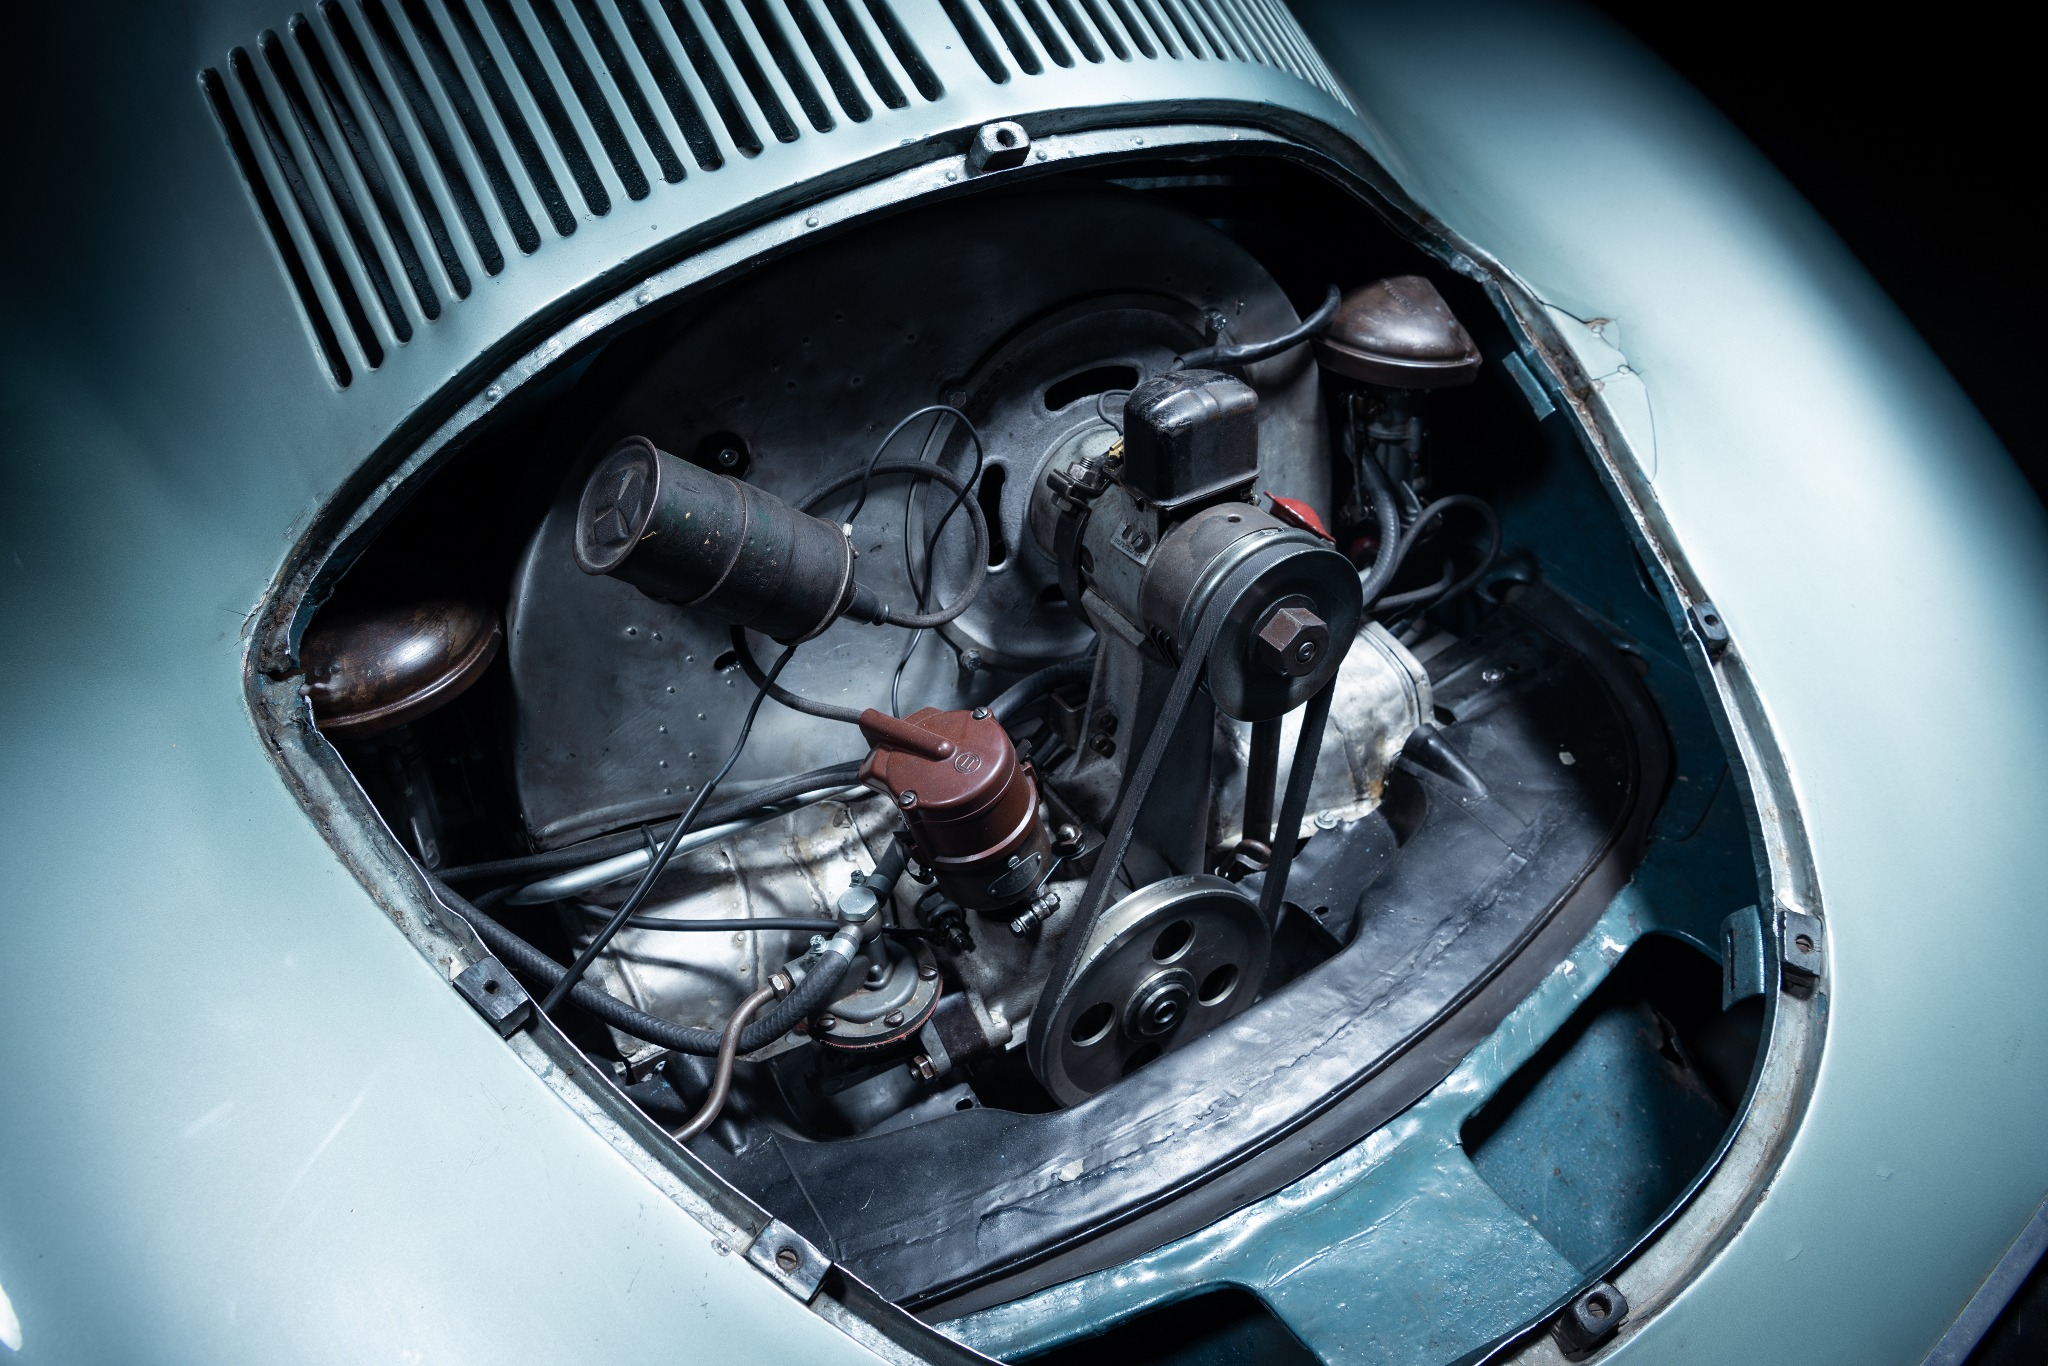 Porsche Type64 engine